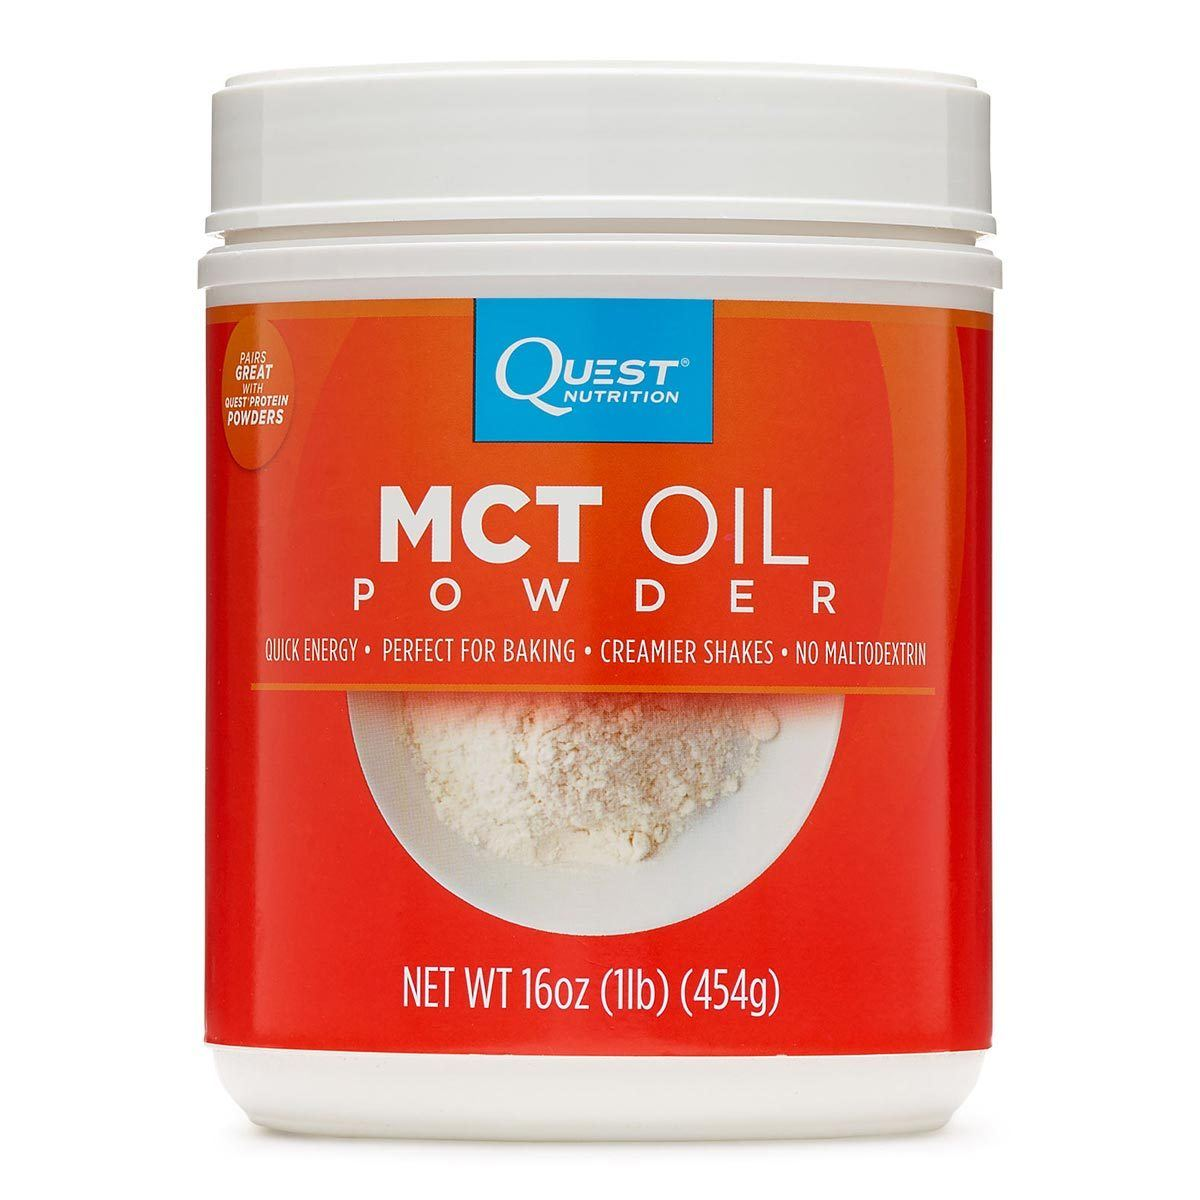 Quest Nutrition MCT Oil Powder 16oz Omega Fatty Acids / EFAs Quest Nutrition  (1059310043179)